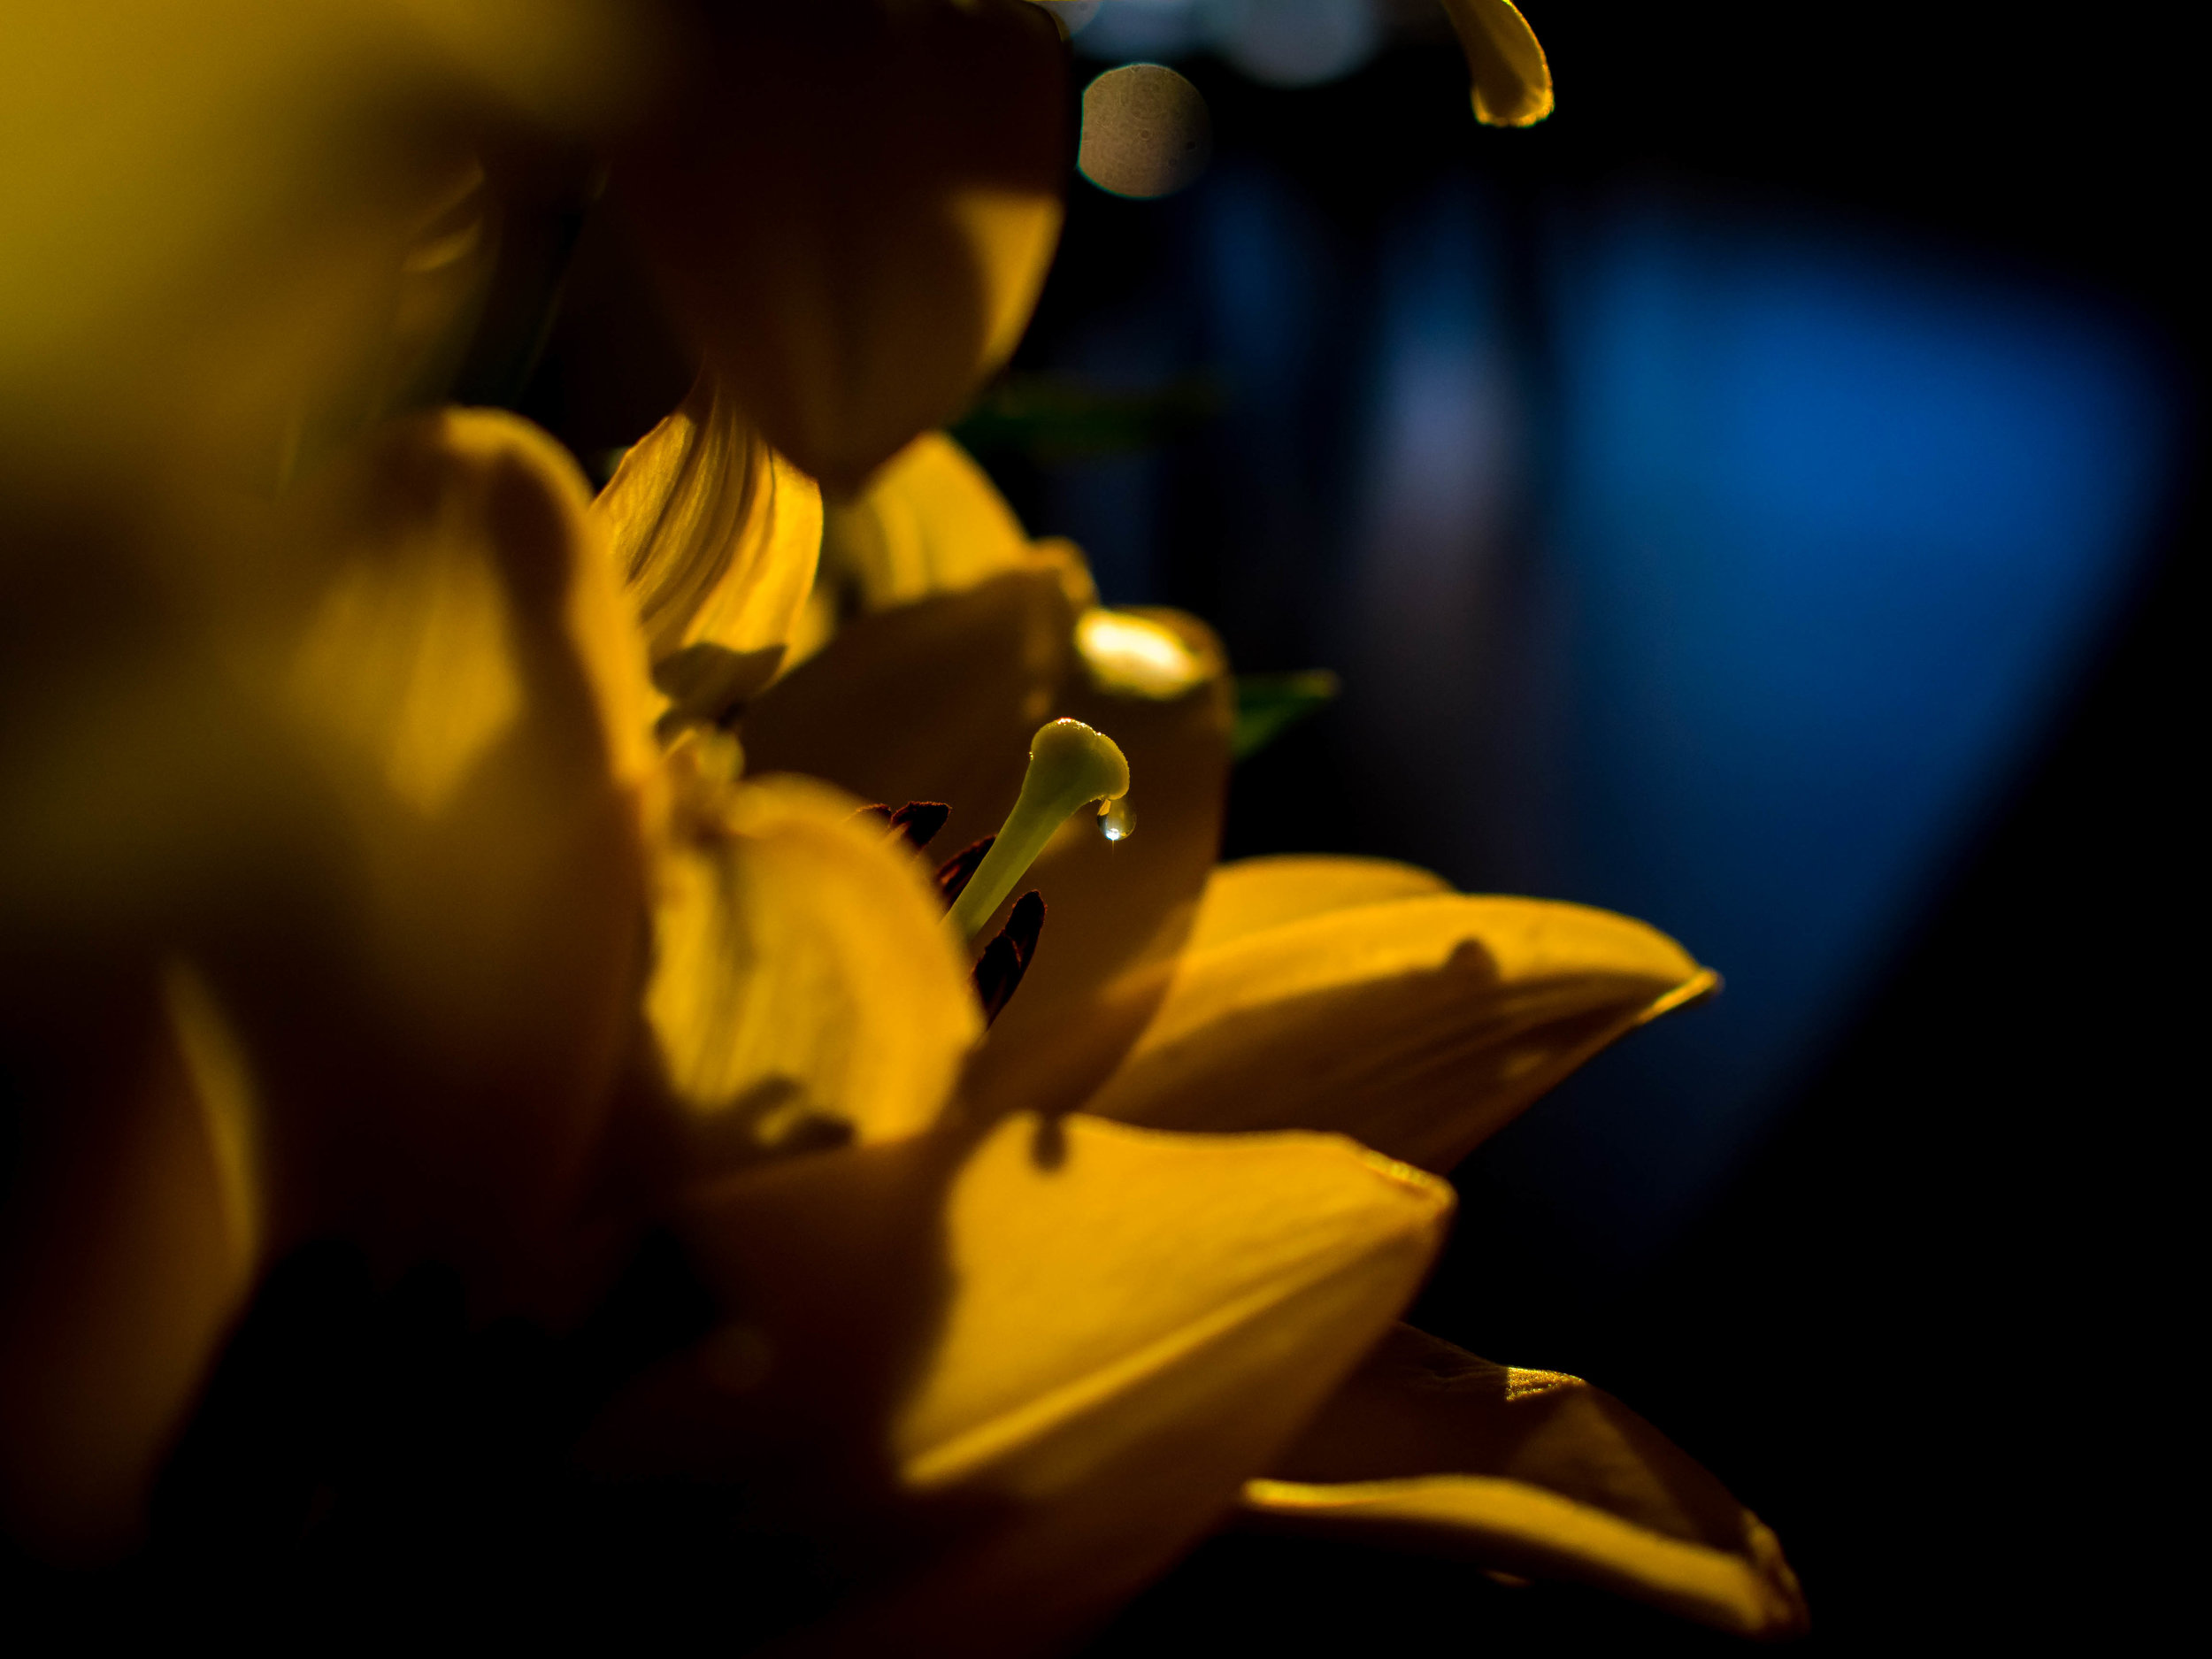 Another example of Bokeh being an important element in a shallow DoF image. Poor Bokeh can effect the strength of an image. The only way to really know is to try out your lenses and compare their effects. If it feels/looks right, then go with it.